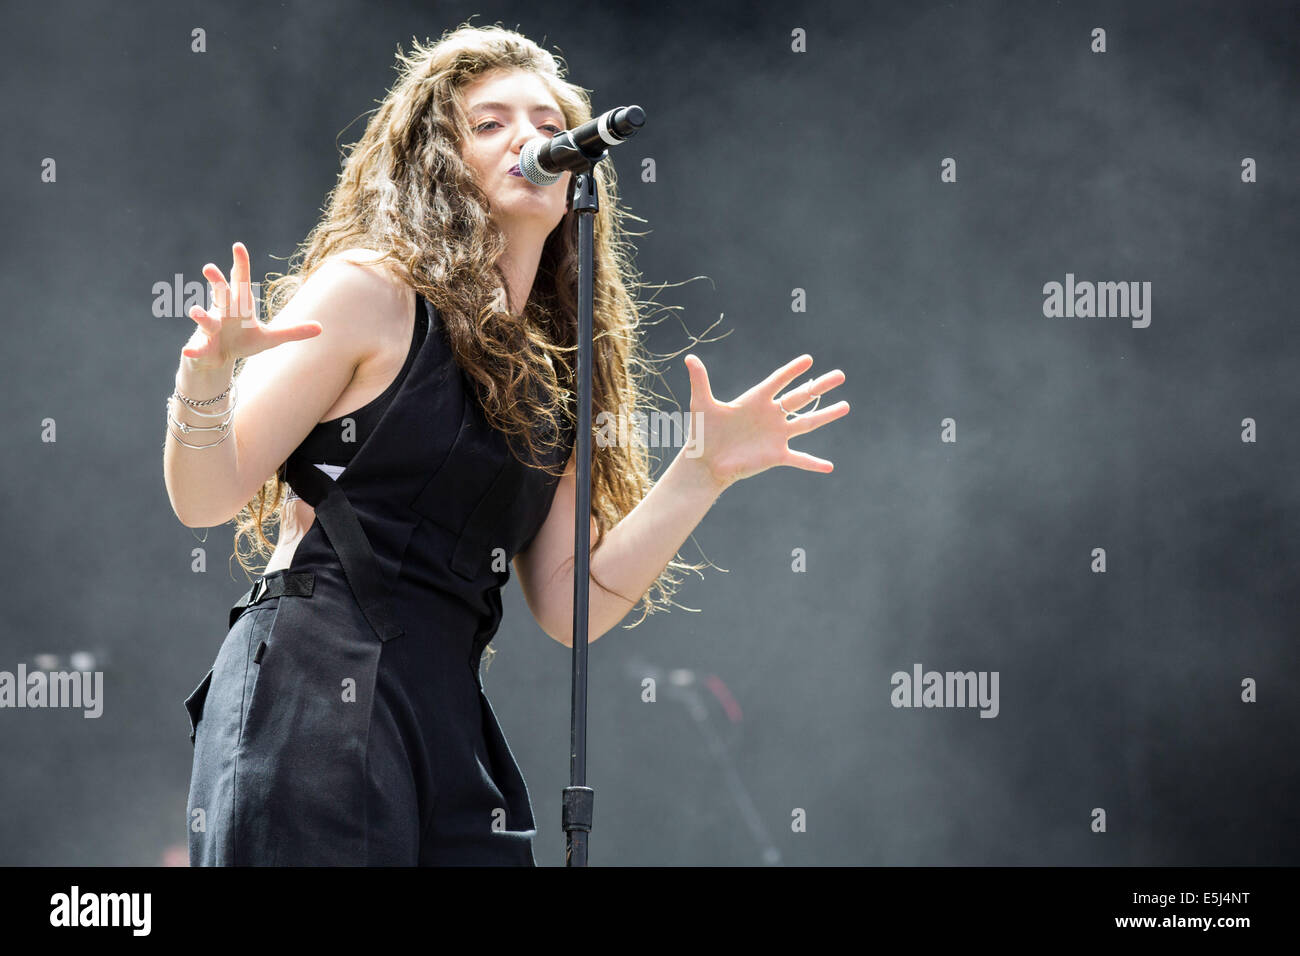 Chicago, Illinois, USA. 5th Jan, 2012. Vocalist LORDE performs live at the 2014 Lollapalooza Music Festival in Chicago, - Stock Image